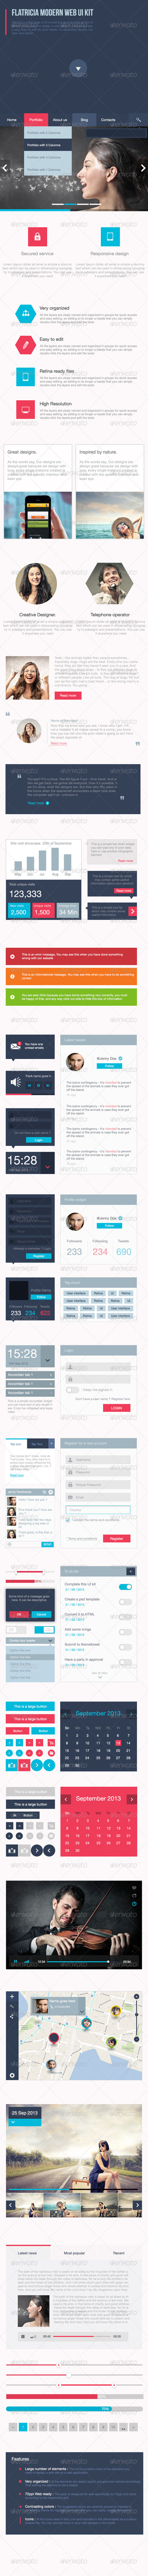 Flatricia : Flat and Modern Web UI Kit - User Interfaces Web Elements